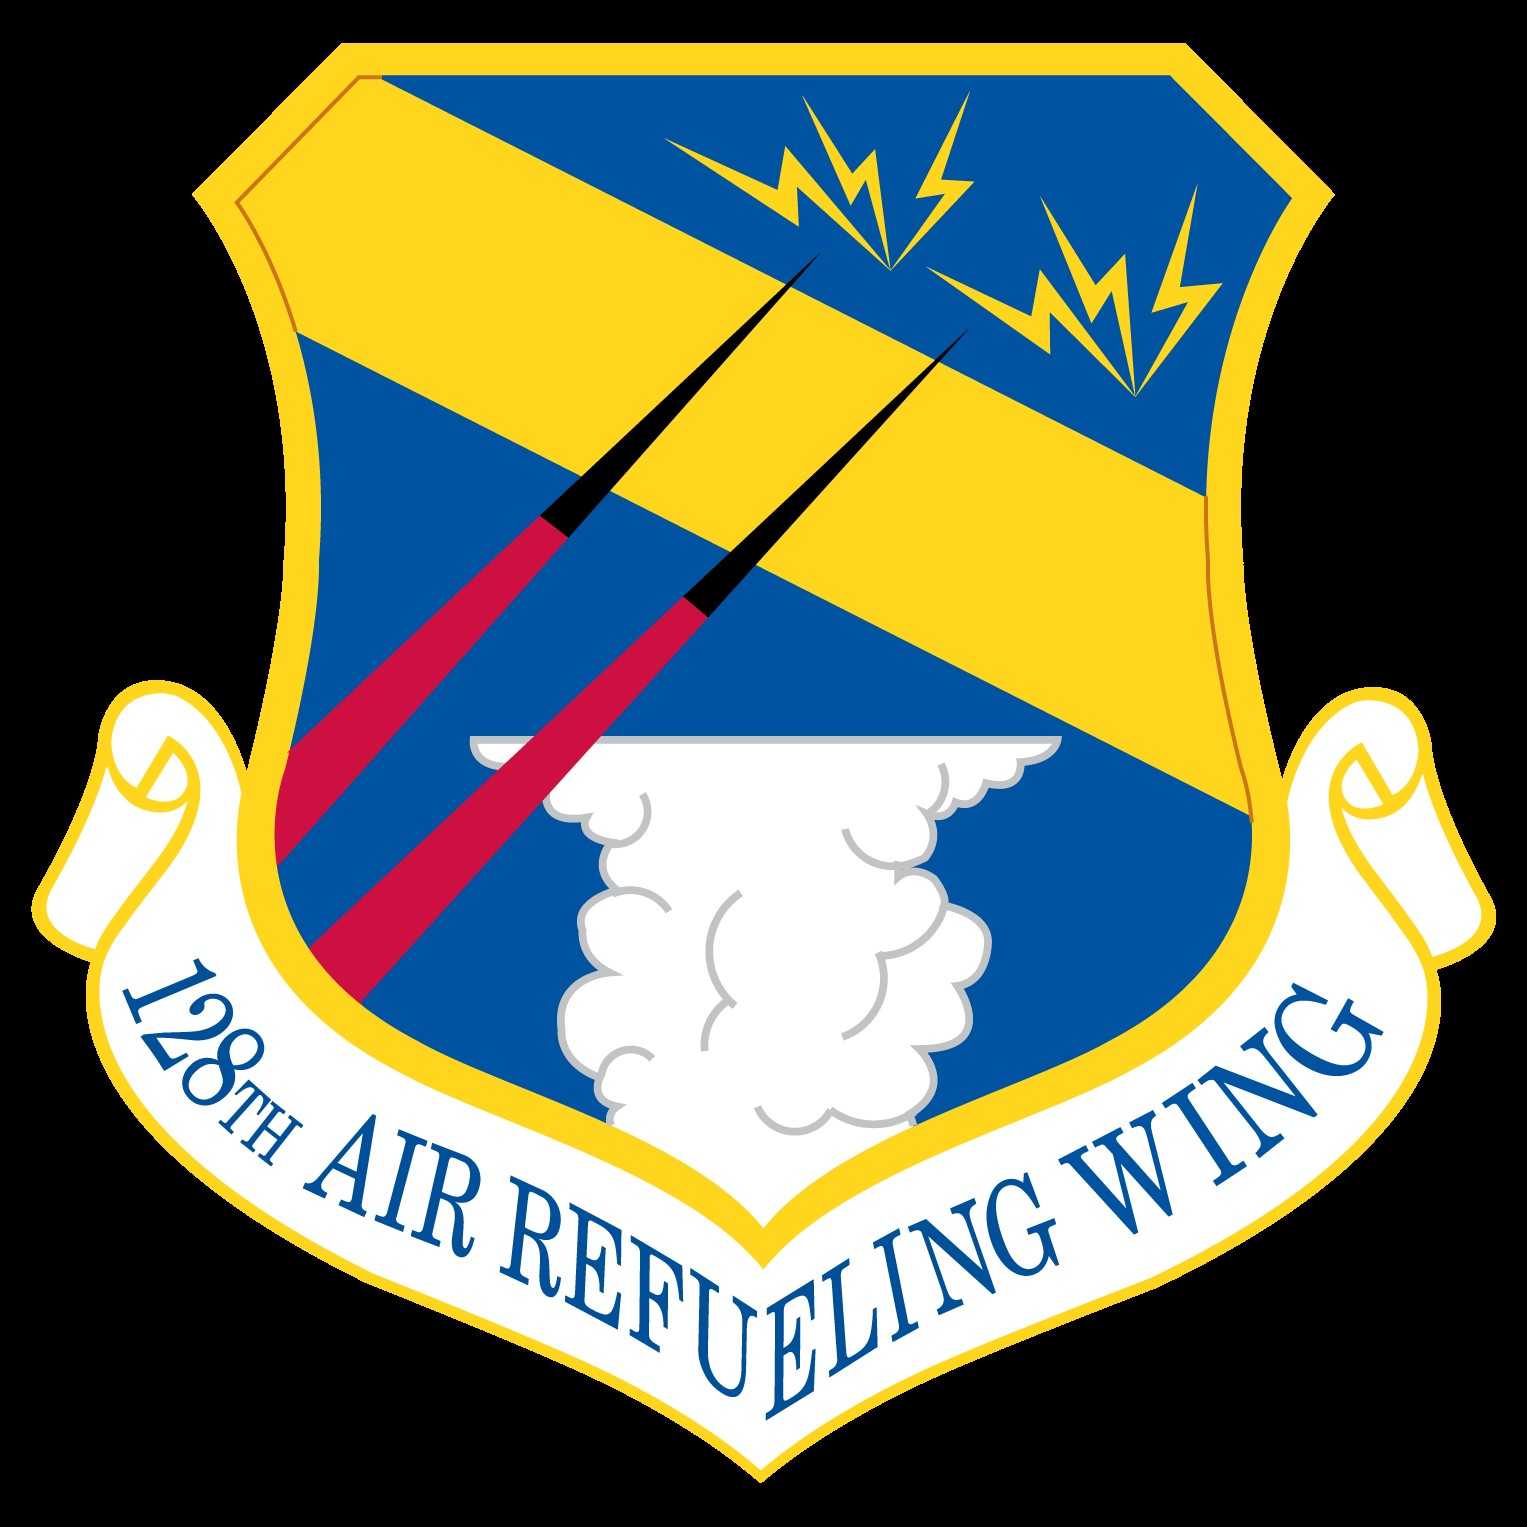 128 ARW Wing Safety Annual Inspection